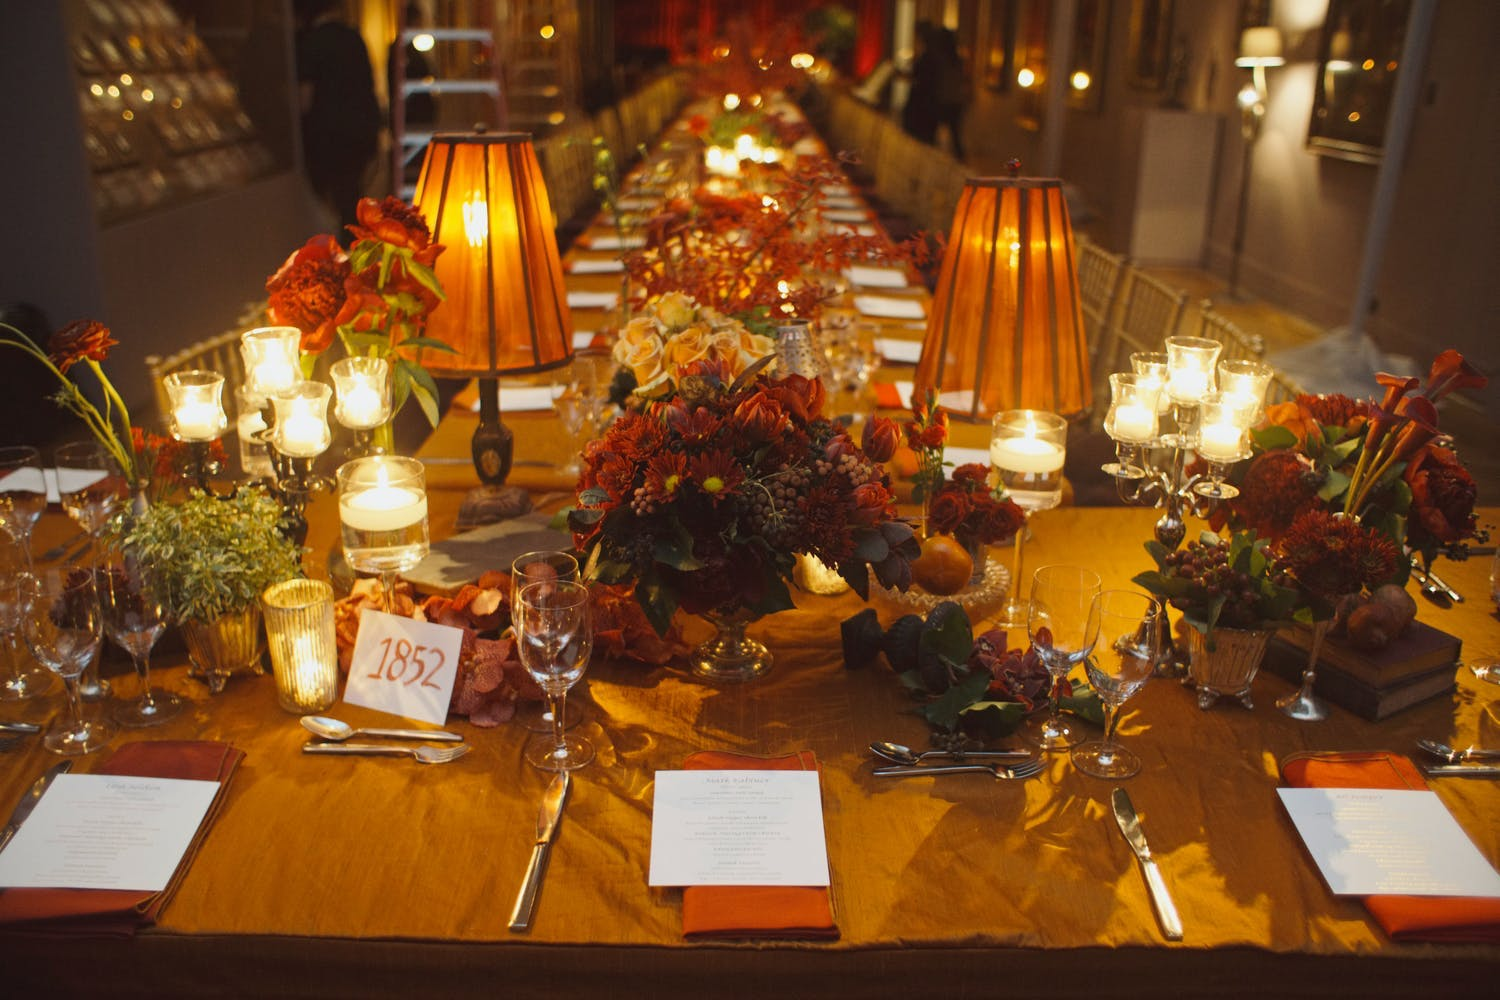 Fall wedding table with amber lamps, vintage books, and gold and flowers   PartySlate